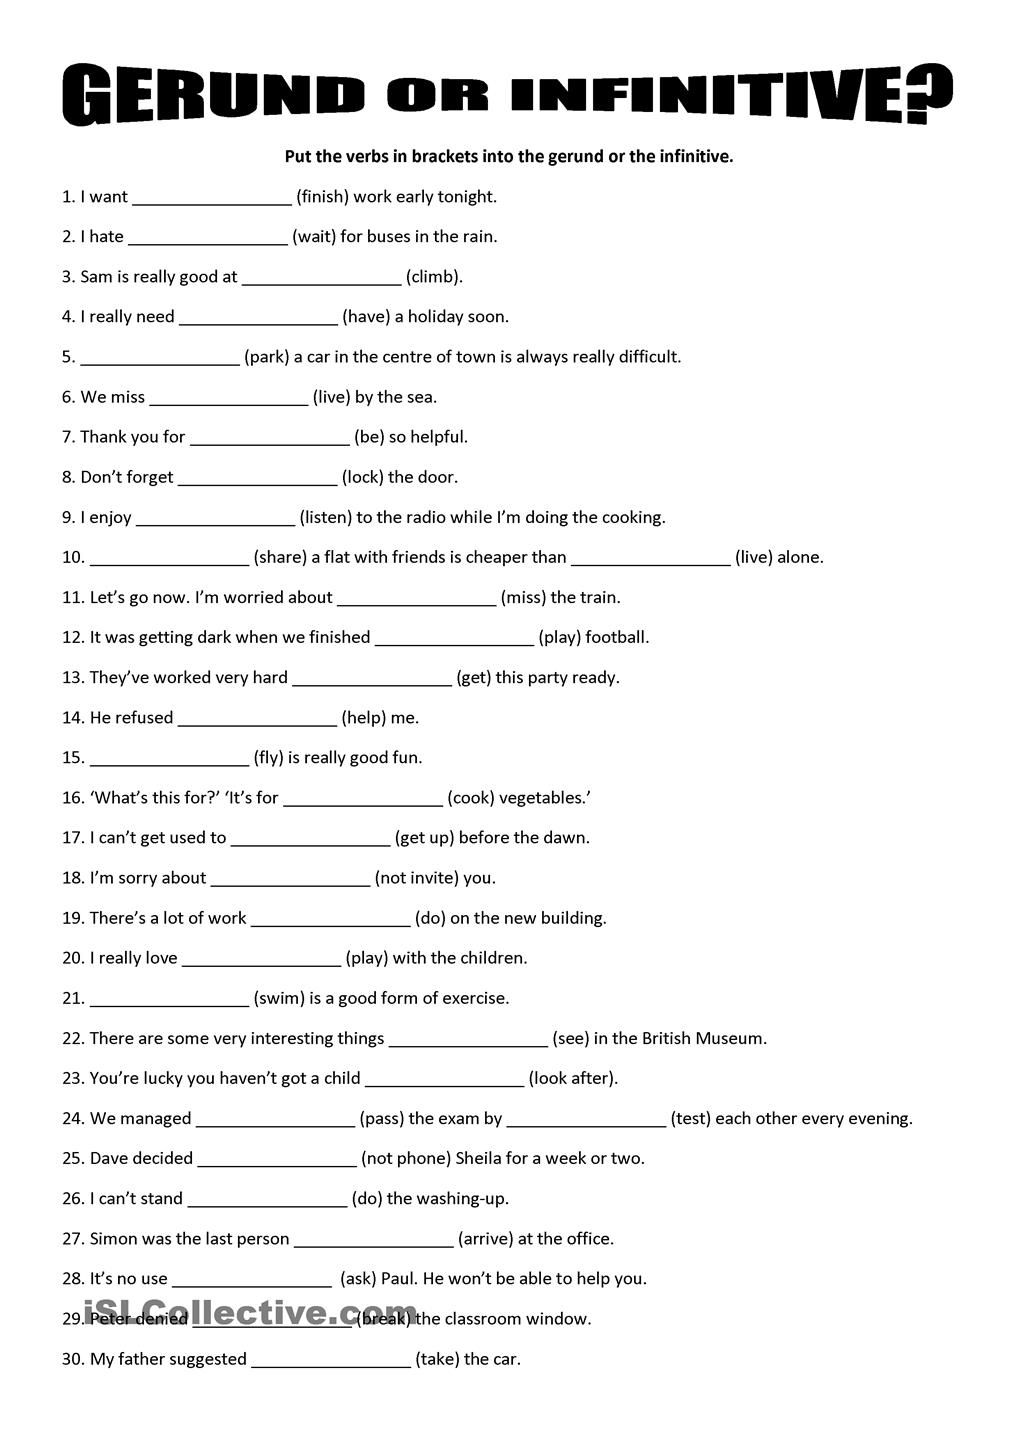 Gerund Or Infinitive Compound Words Worksheets Helping Verbs Word Formation [ 1440 x 1018 Pixel ]